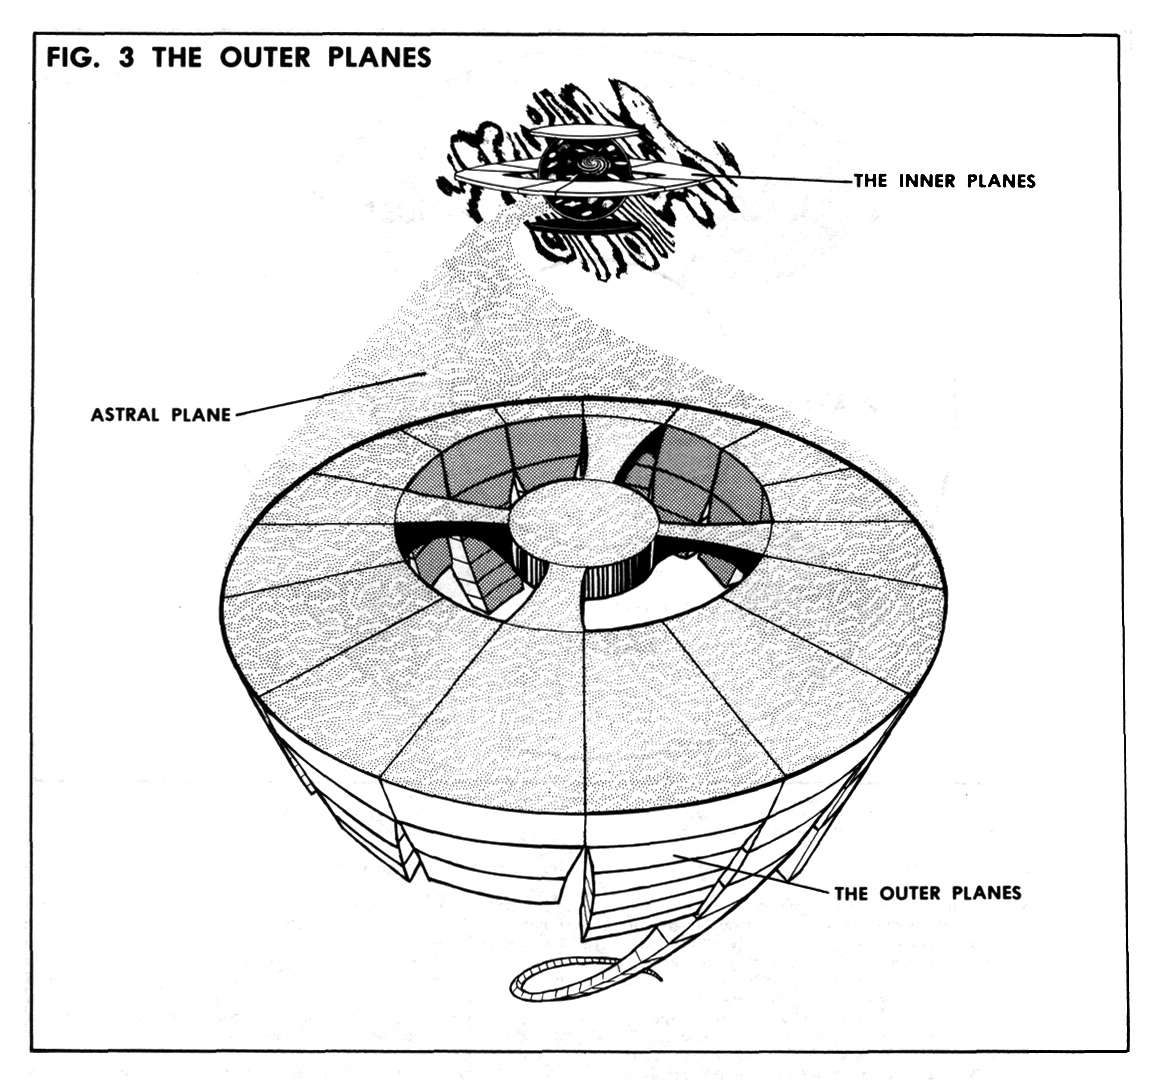 OUTERPLANES APPENDIX - Auto Electrical Wiring Diagram